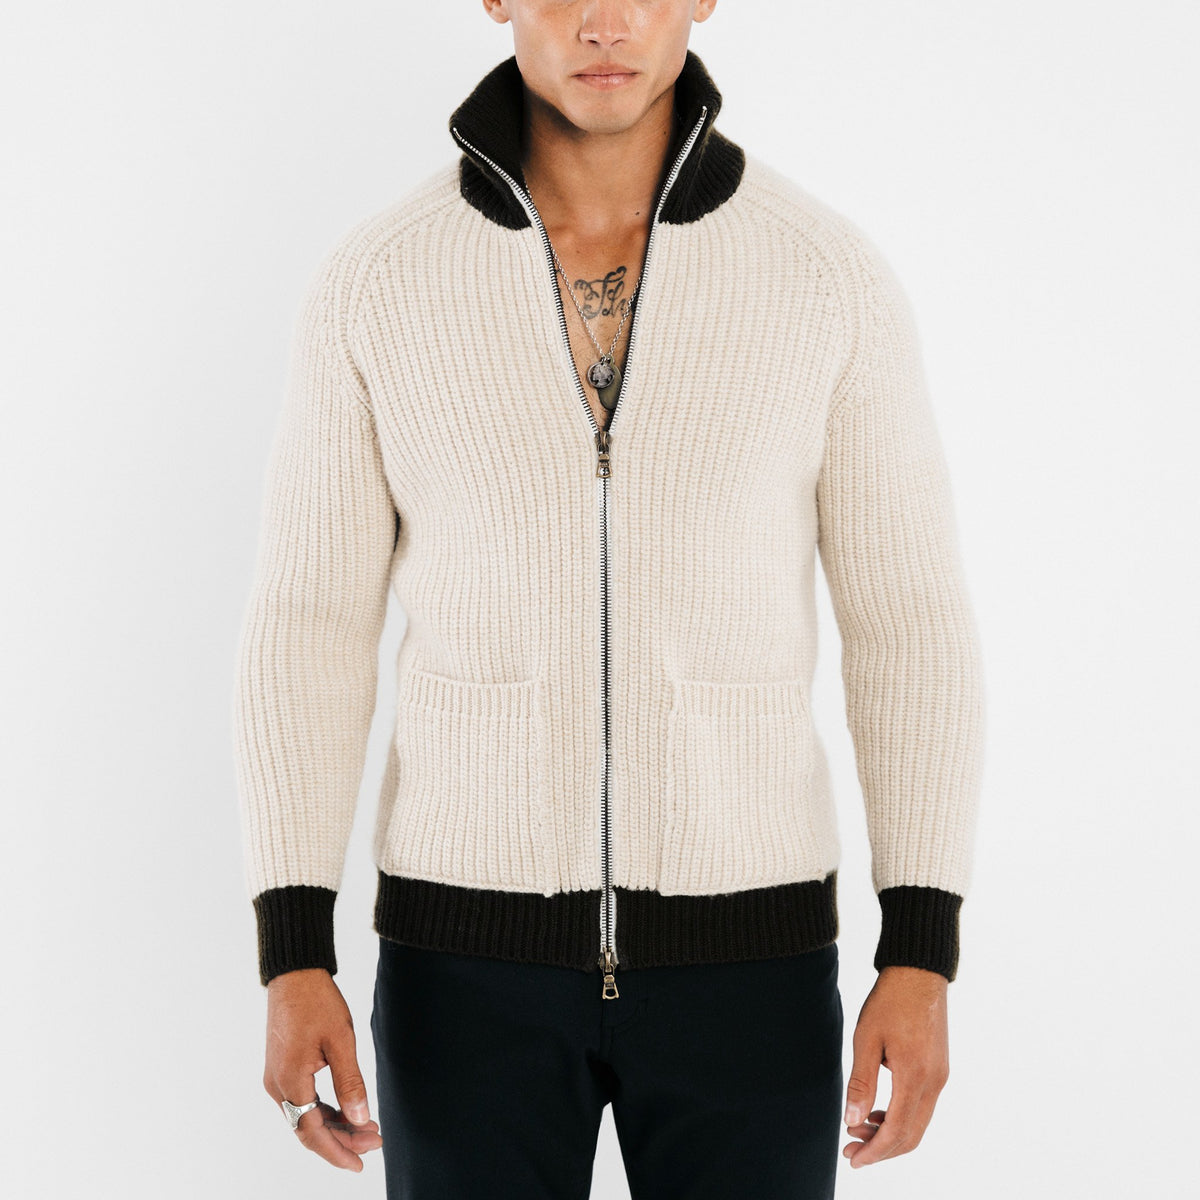 Full-Zip 6-Ply Sweater - Oatmeal / Black